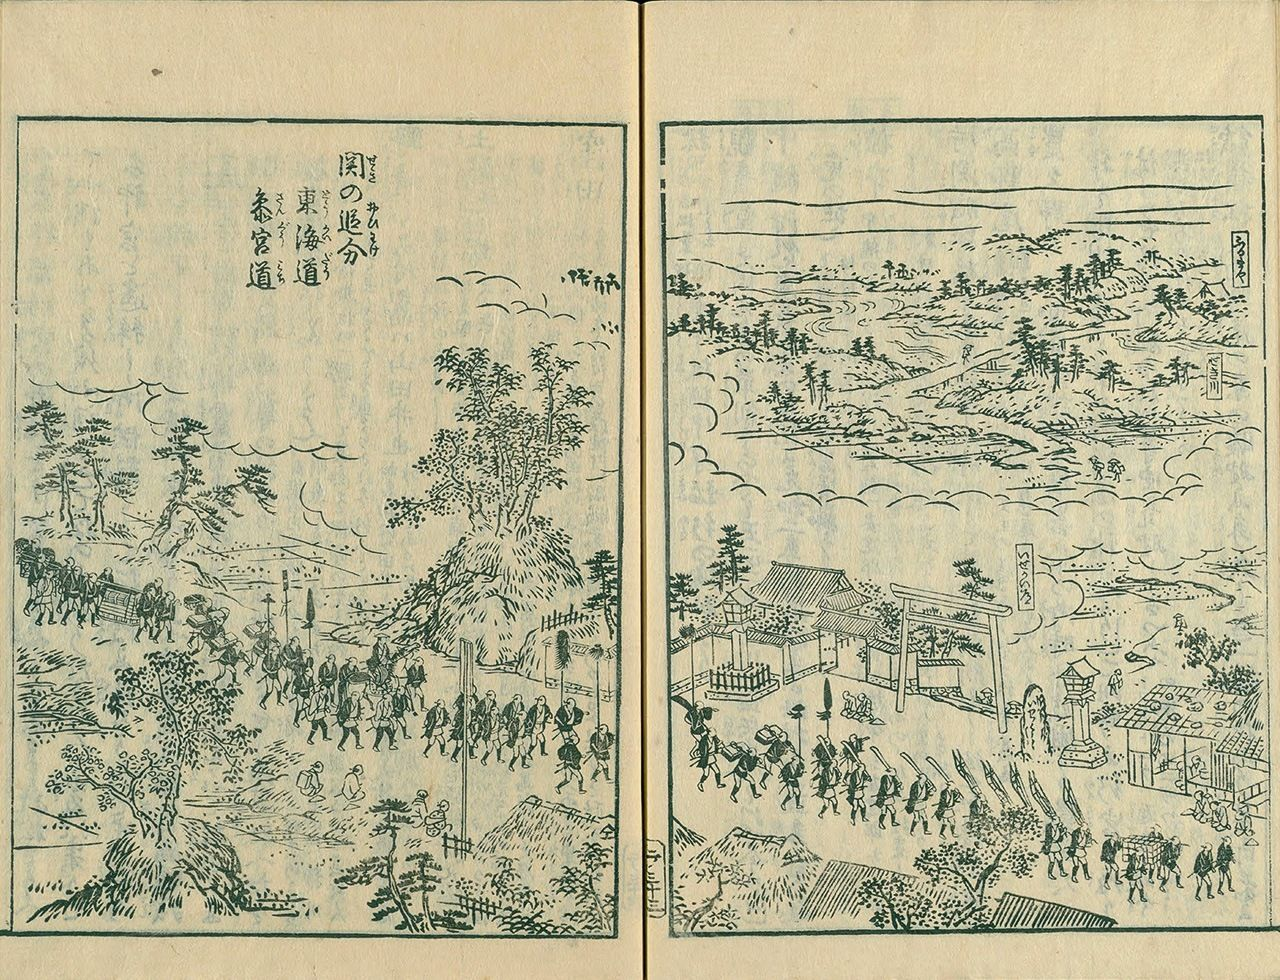 Pictures from the Ise sangū meisho zue (Illustrated Guide to the Ise Pilgrimage) show a daimyō's party passing the Seki-juku post station, which connected the Tōkaidō with the Ise Kaidō. (Courtesy National Diet Library)